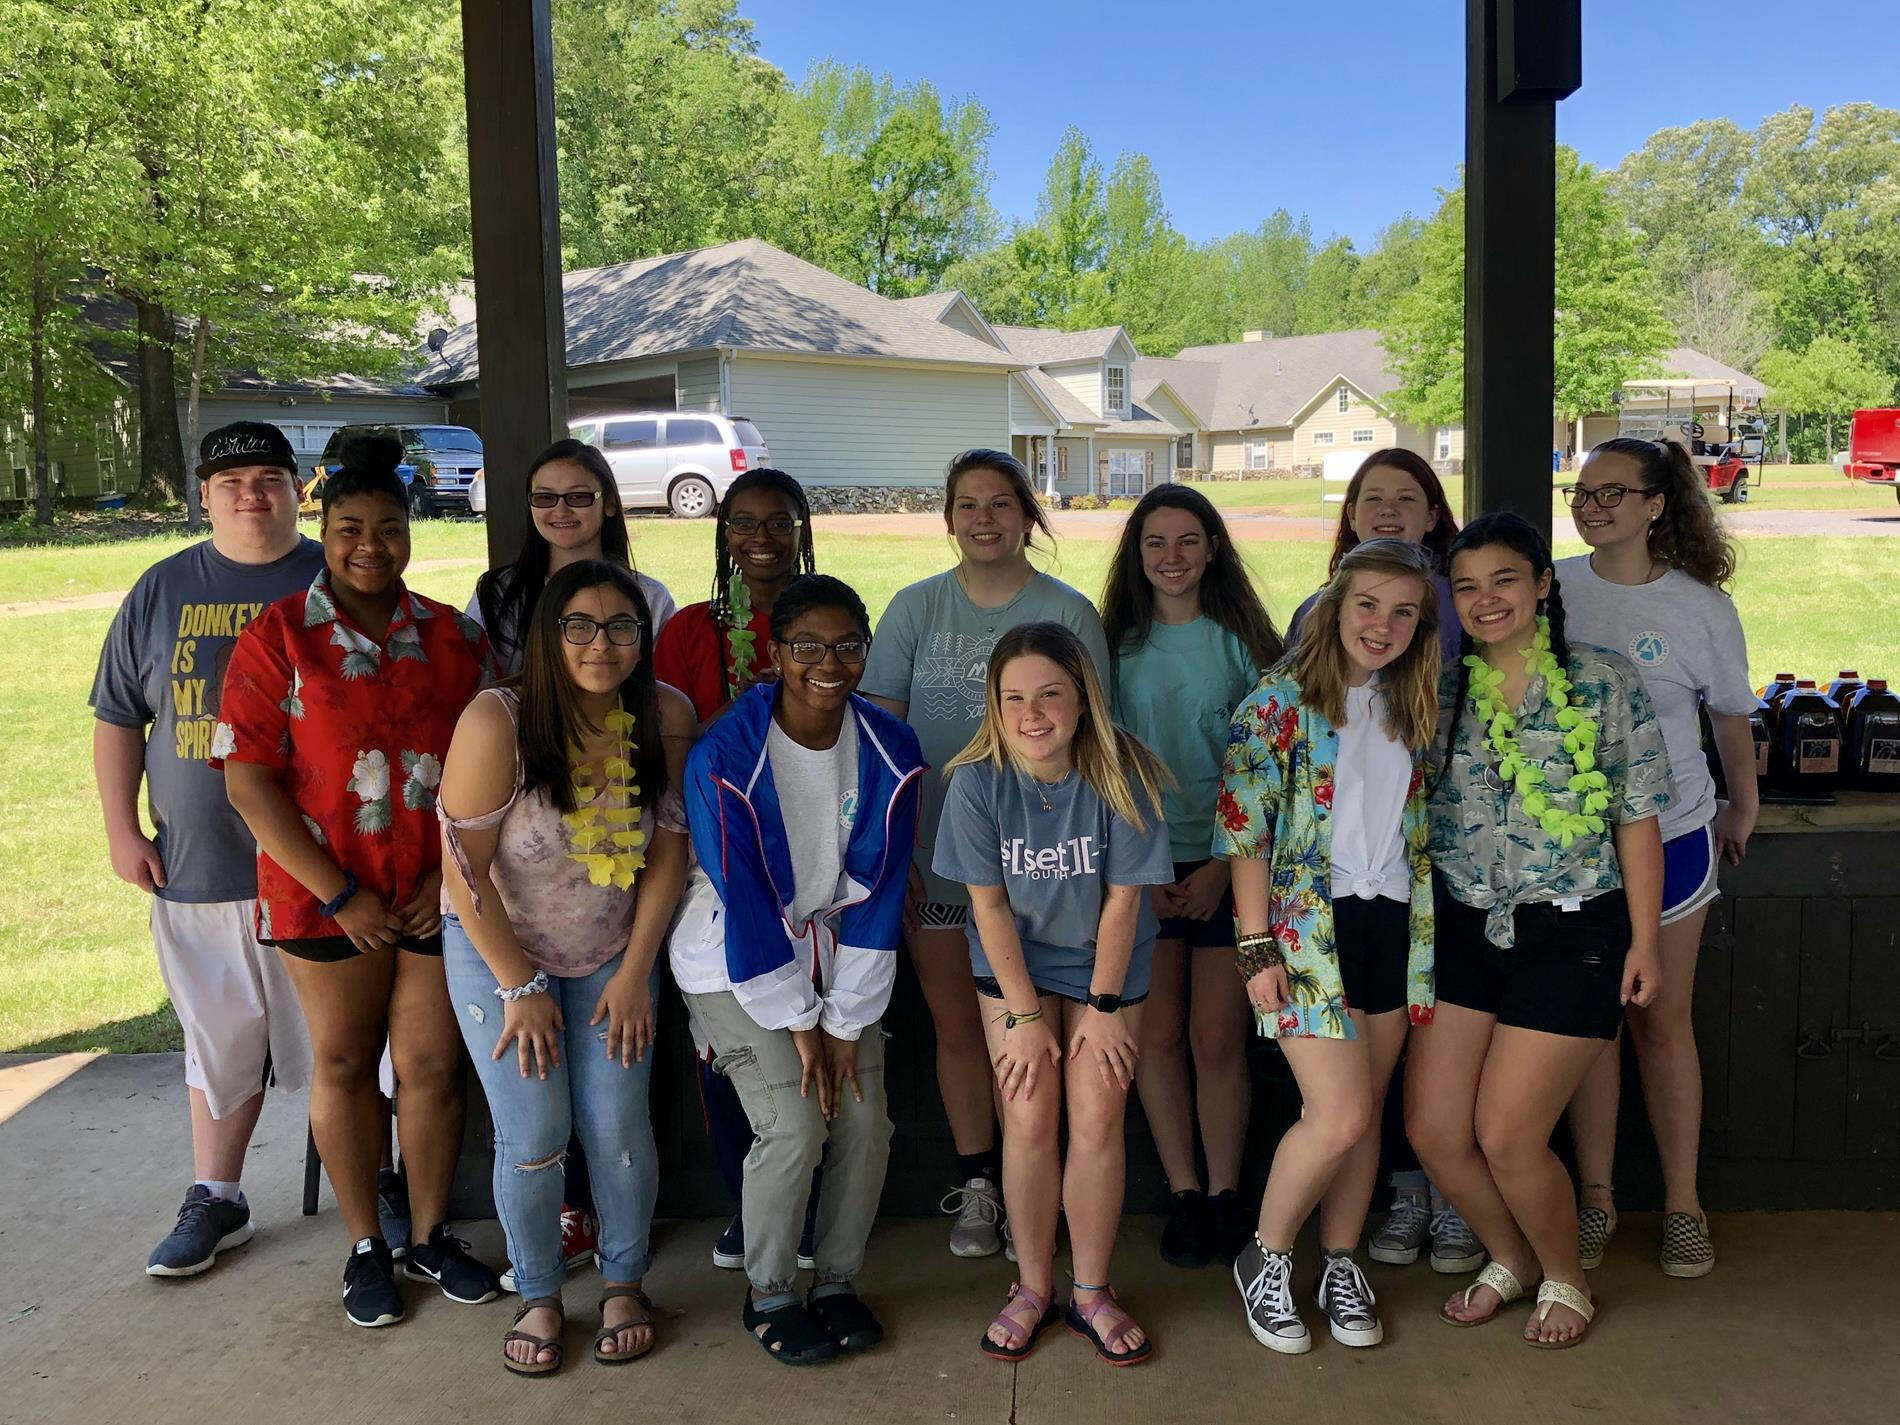 Chick-fil-A Leadership Academy & Student Council Picnic 2019